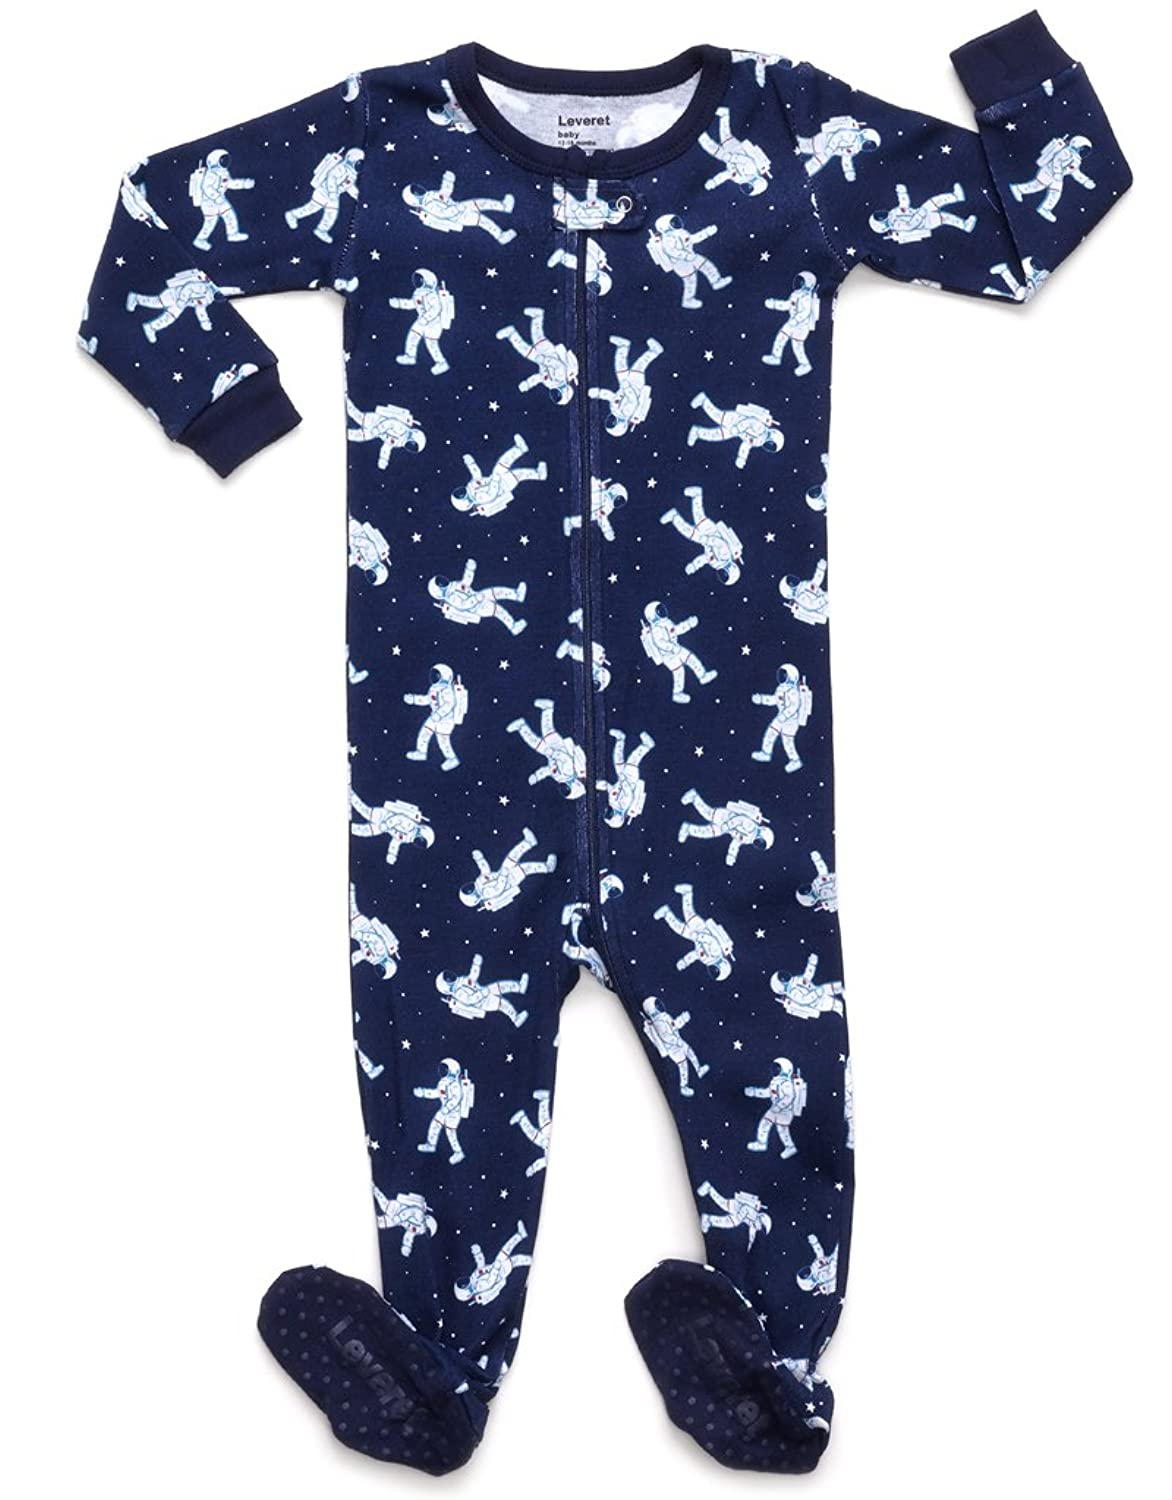 com leveret baby boys footed sleeper pajama % cotton com leveret baby boys footed sleeper pajama 100% cotton size 6m 5 years clothing